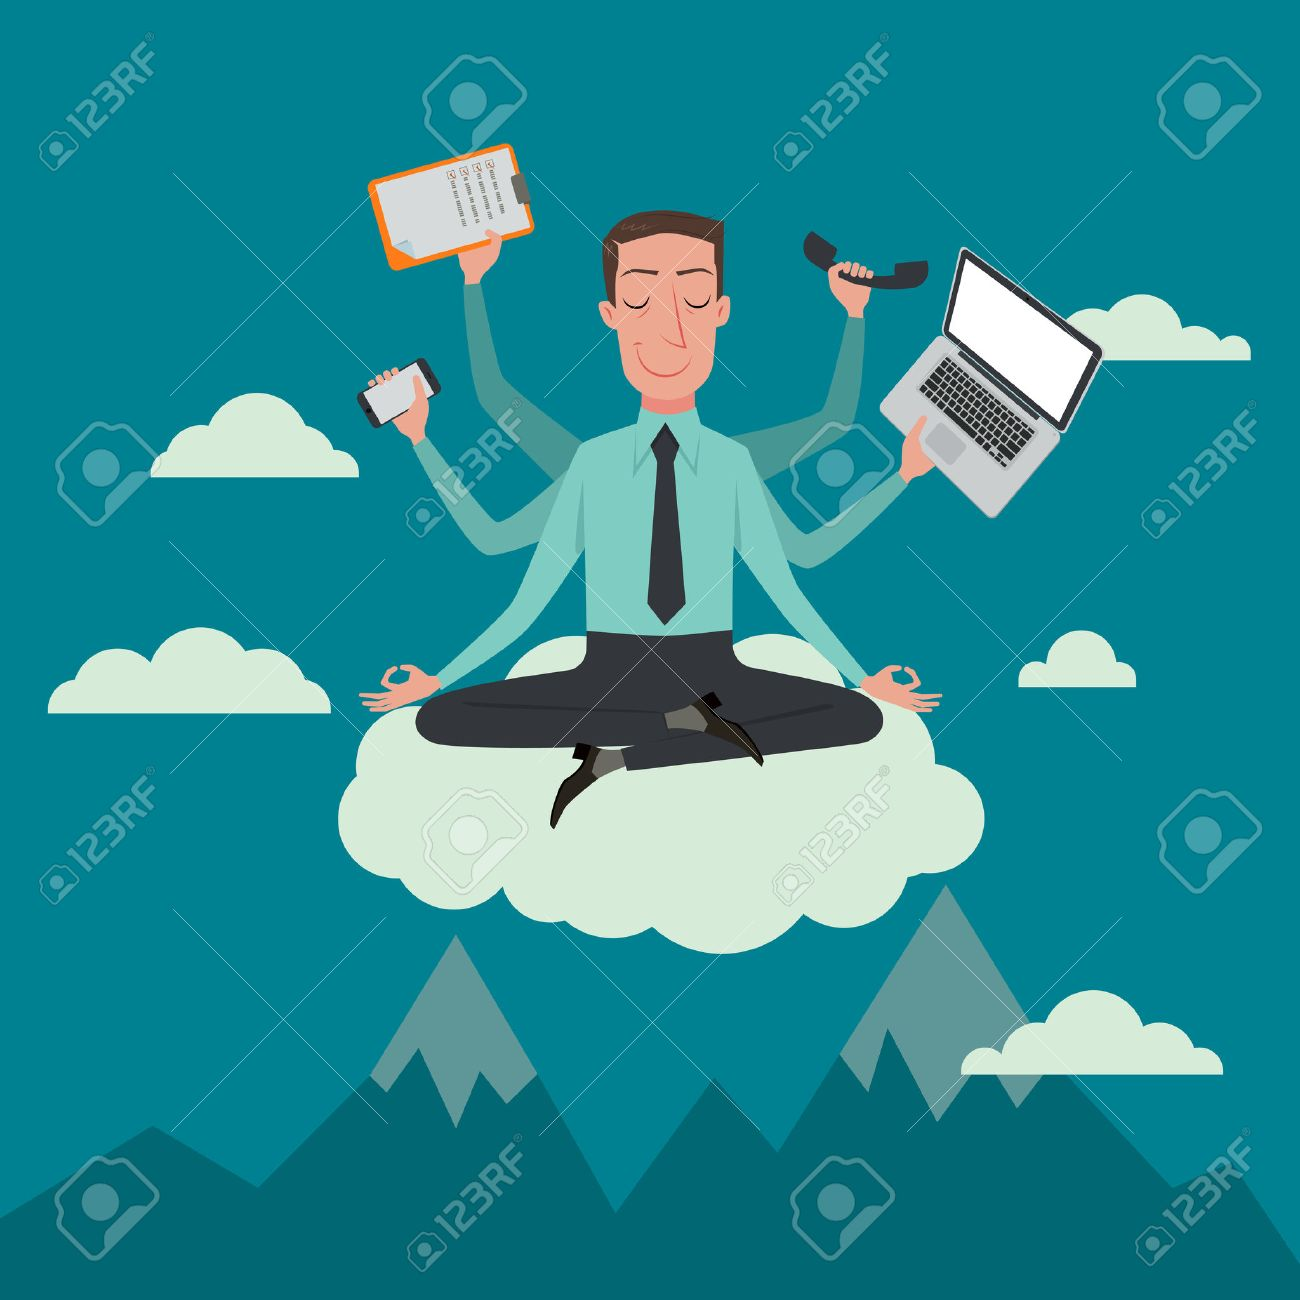 Businessman in the sky position meditating in peace for any spiritual and inner peace business concepts,vector illustration. - 46579522